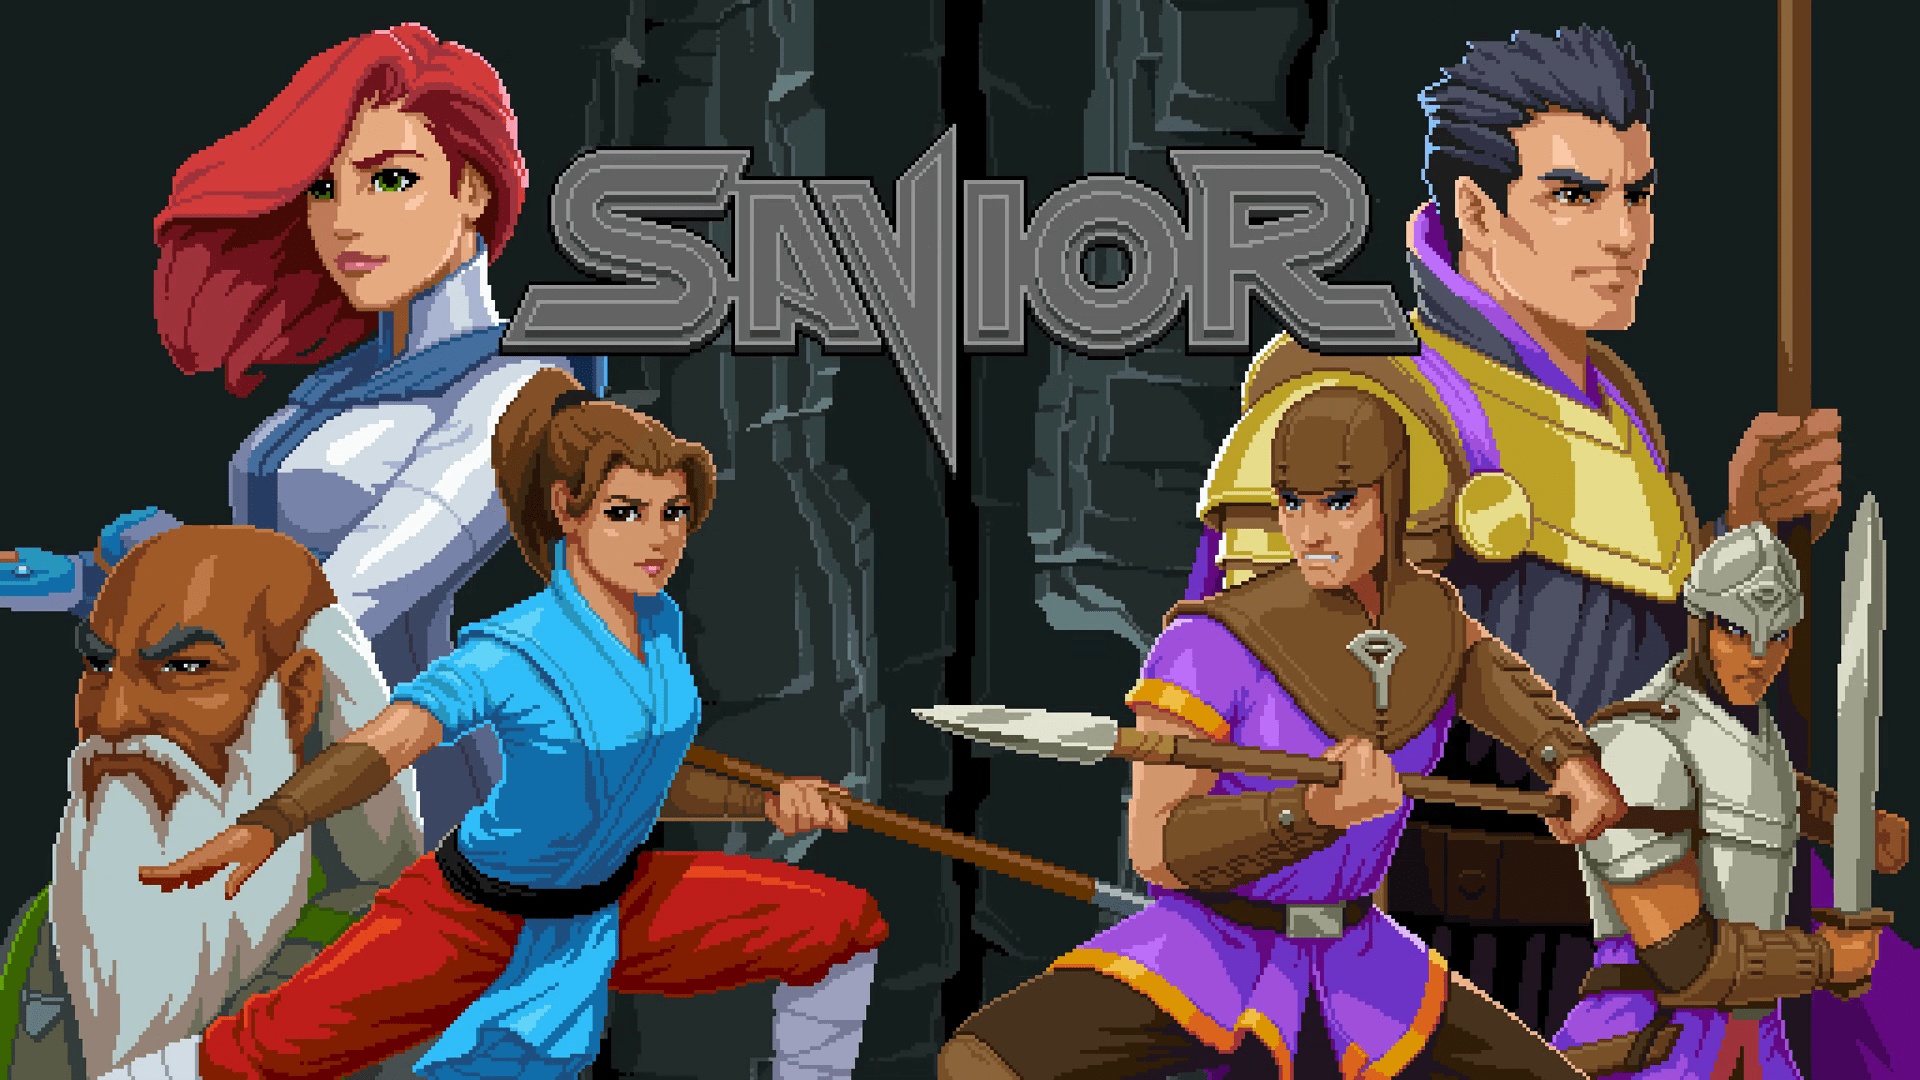 Punch-Out And Metroid Collide In The Upcoming Indie Game Savior